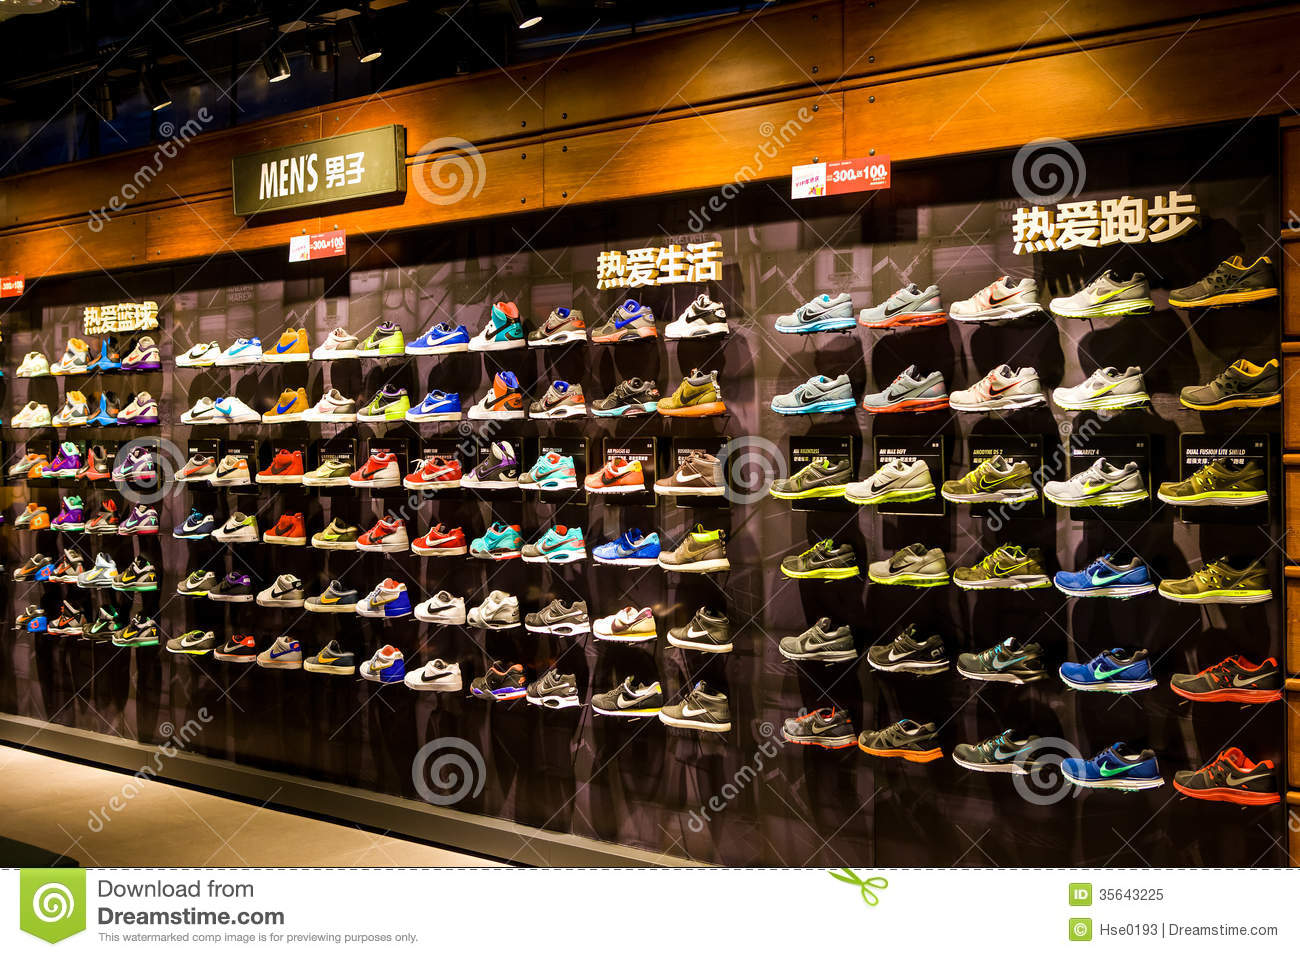 What Shoe Stores Are In The Mall